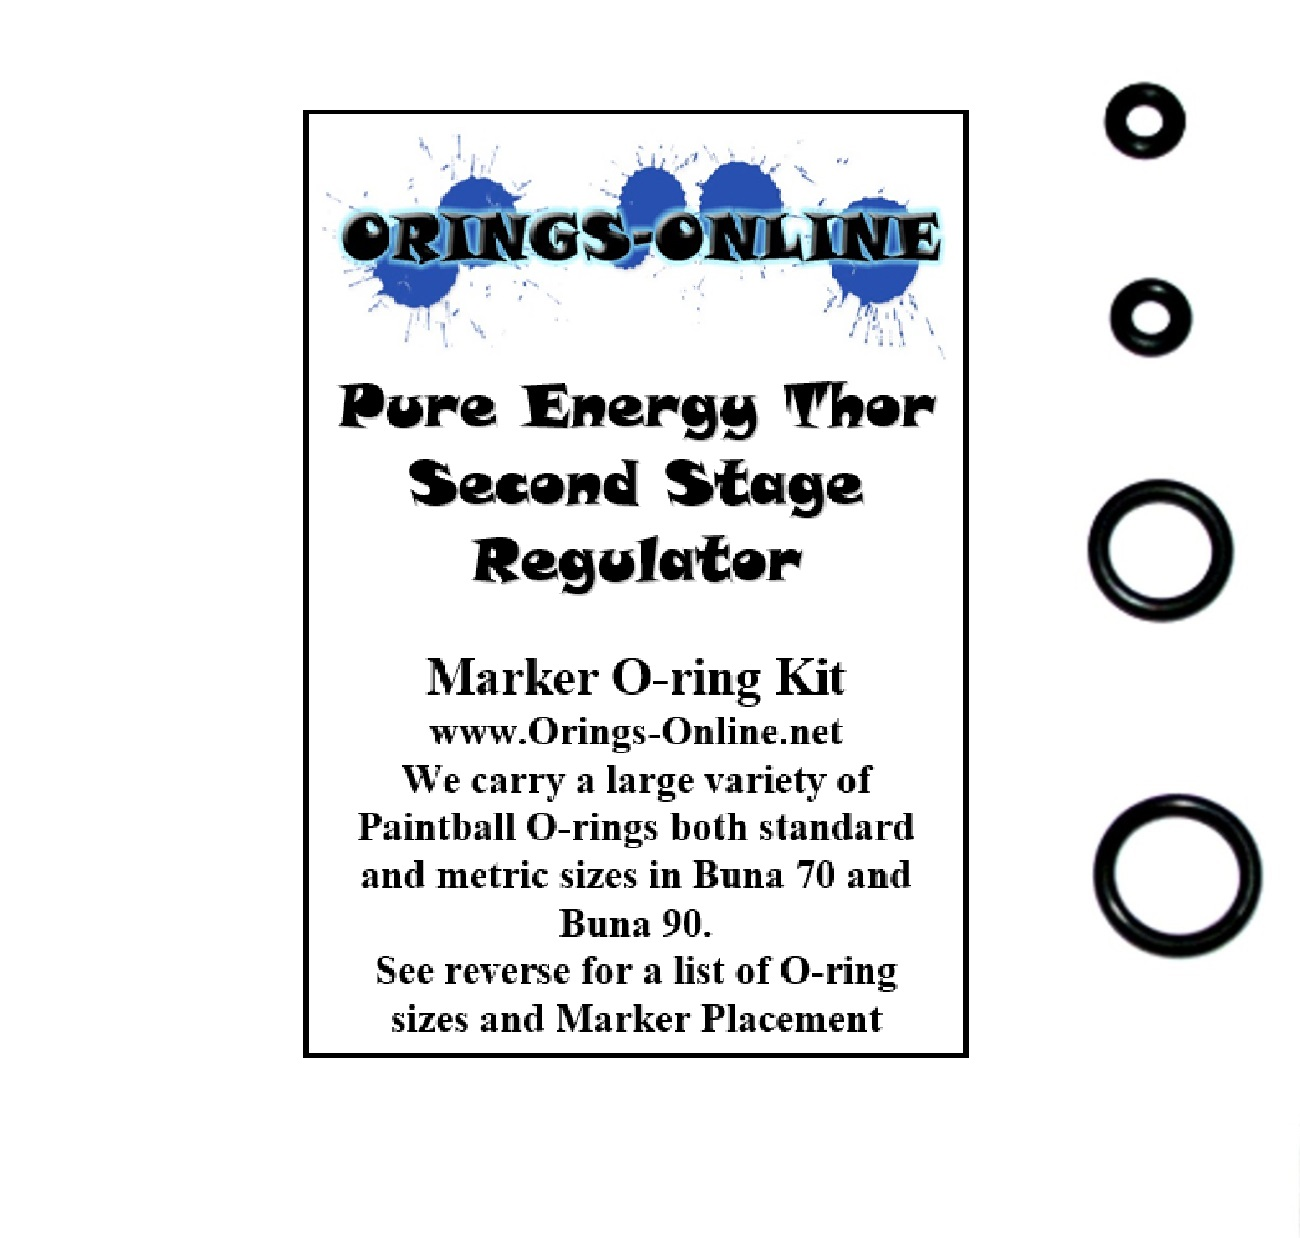 Pure Energy Thor Second Stage Regulator O-ring Kit